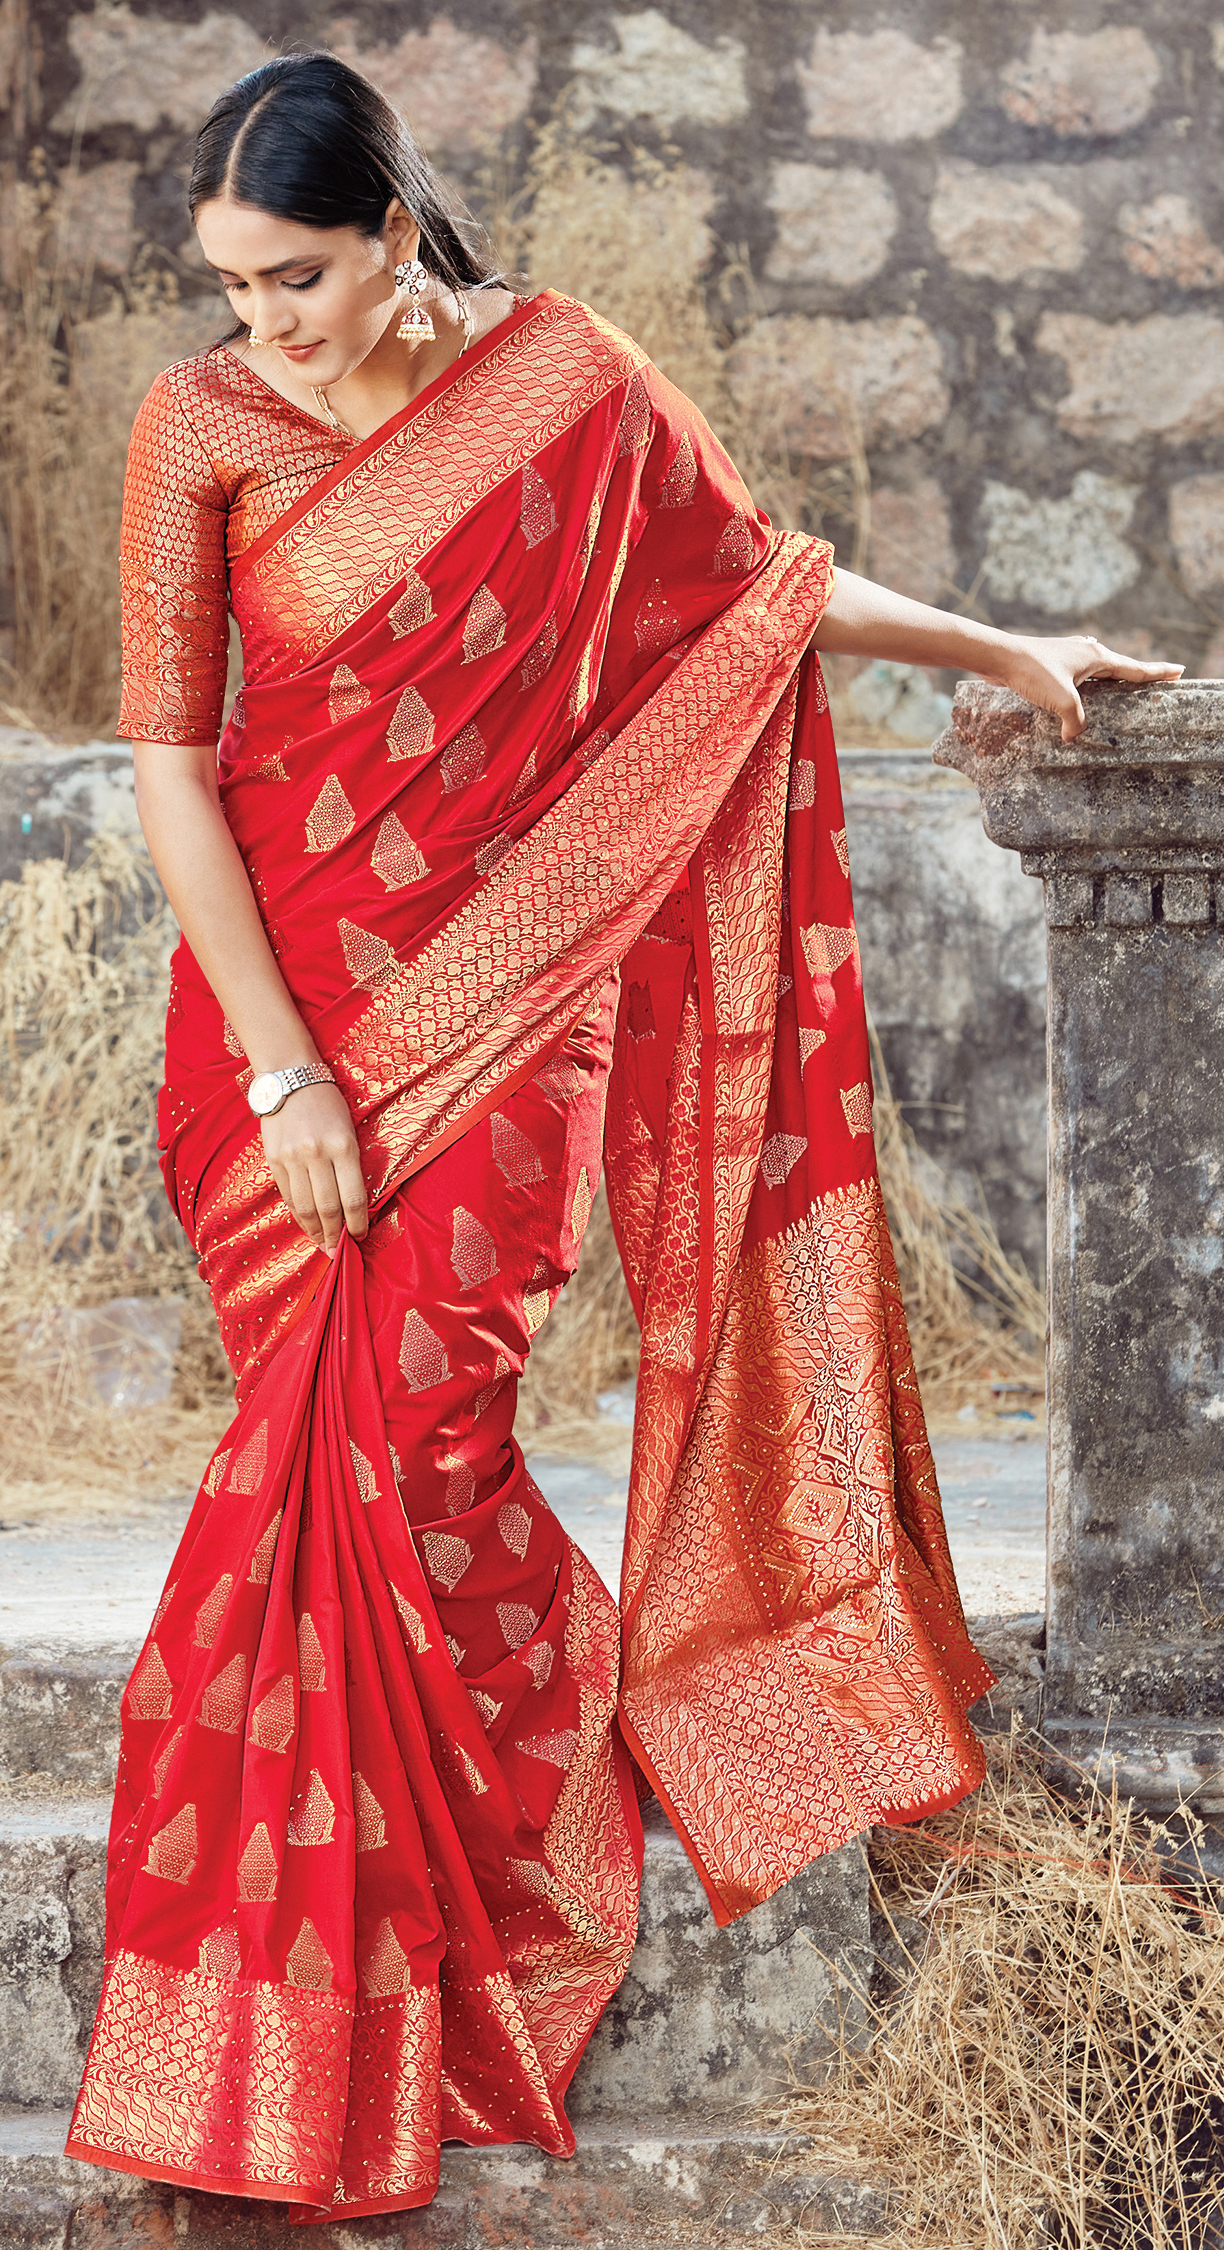 New Embroidery Work Tomato Red Color Latest Silk Saree Collection